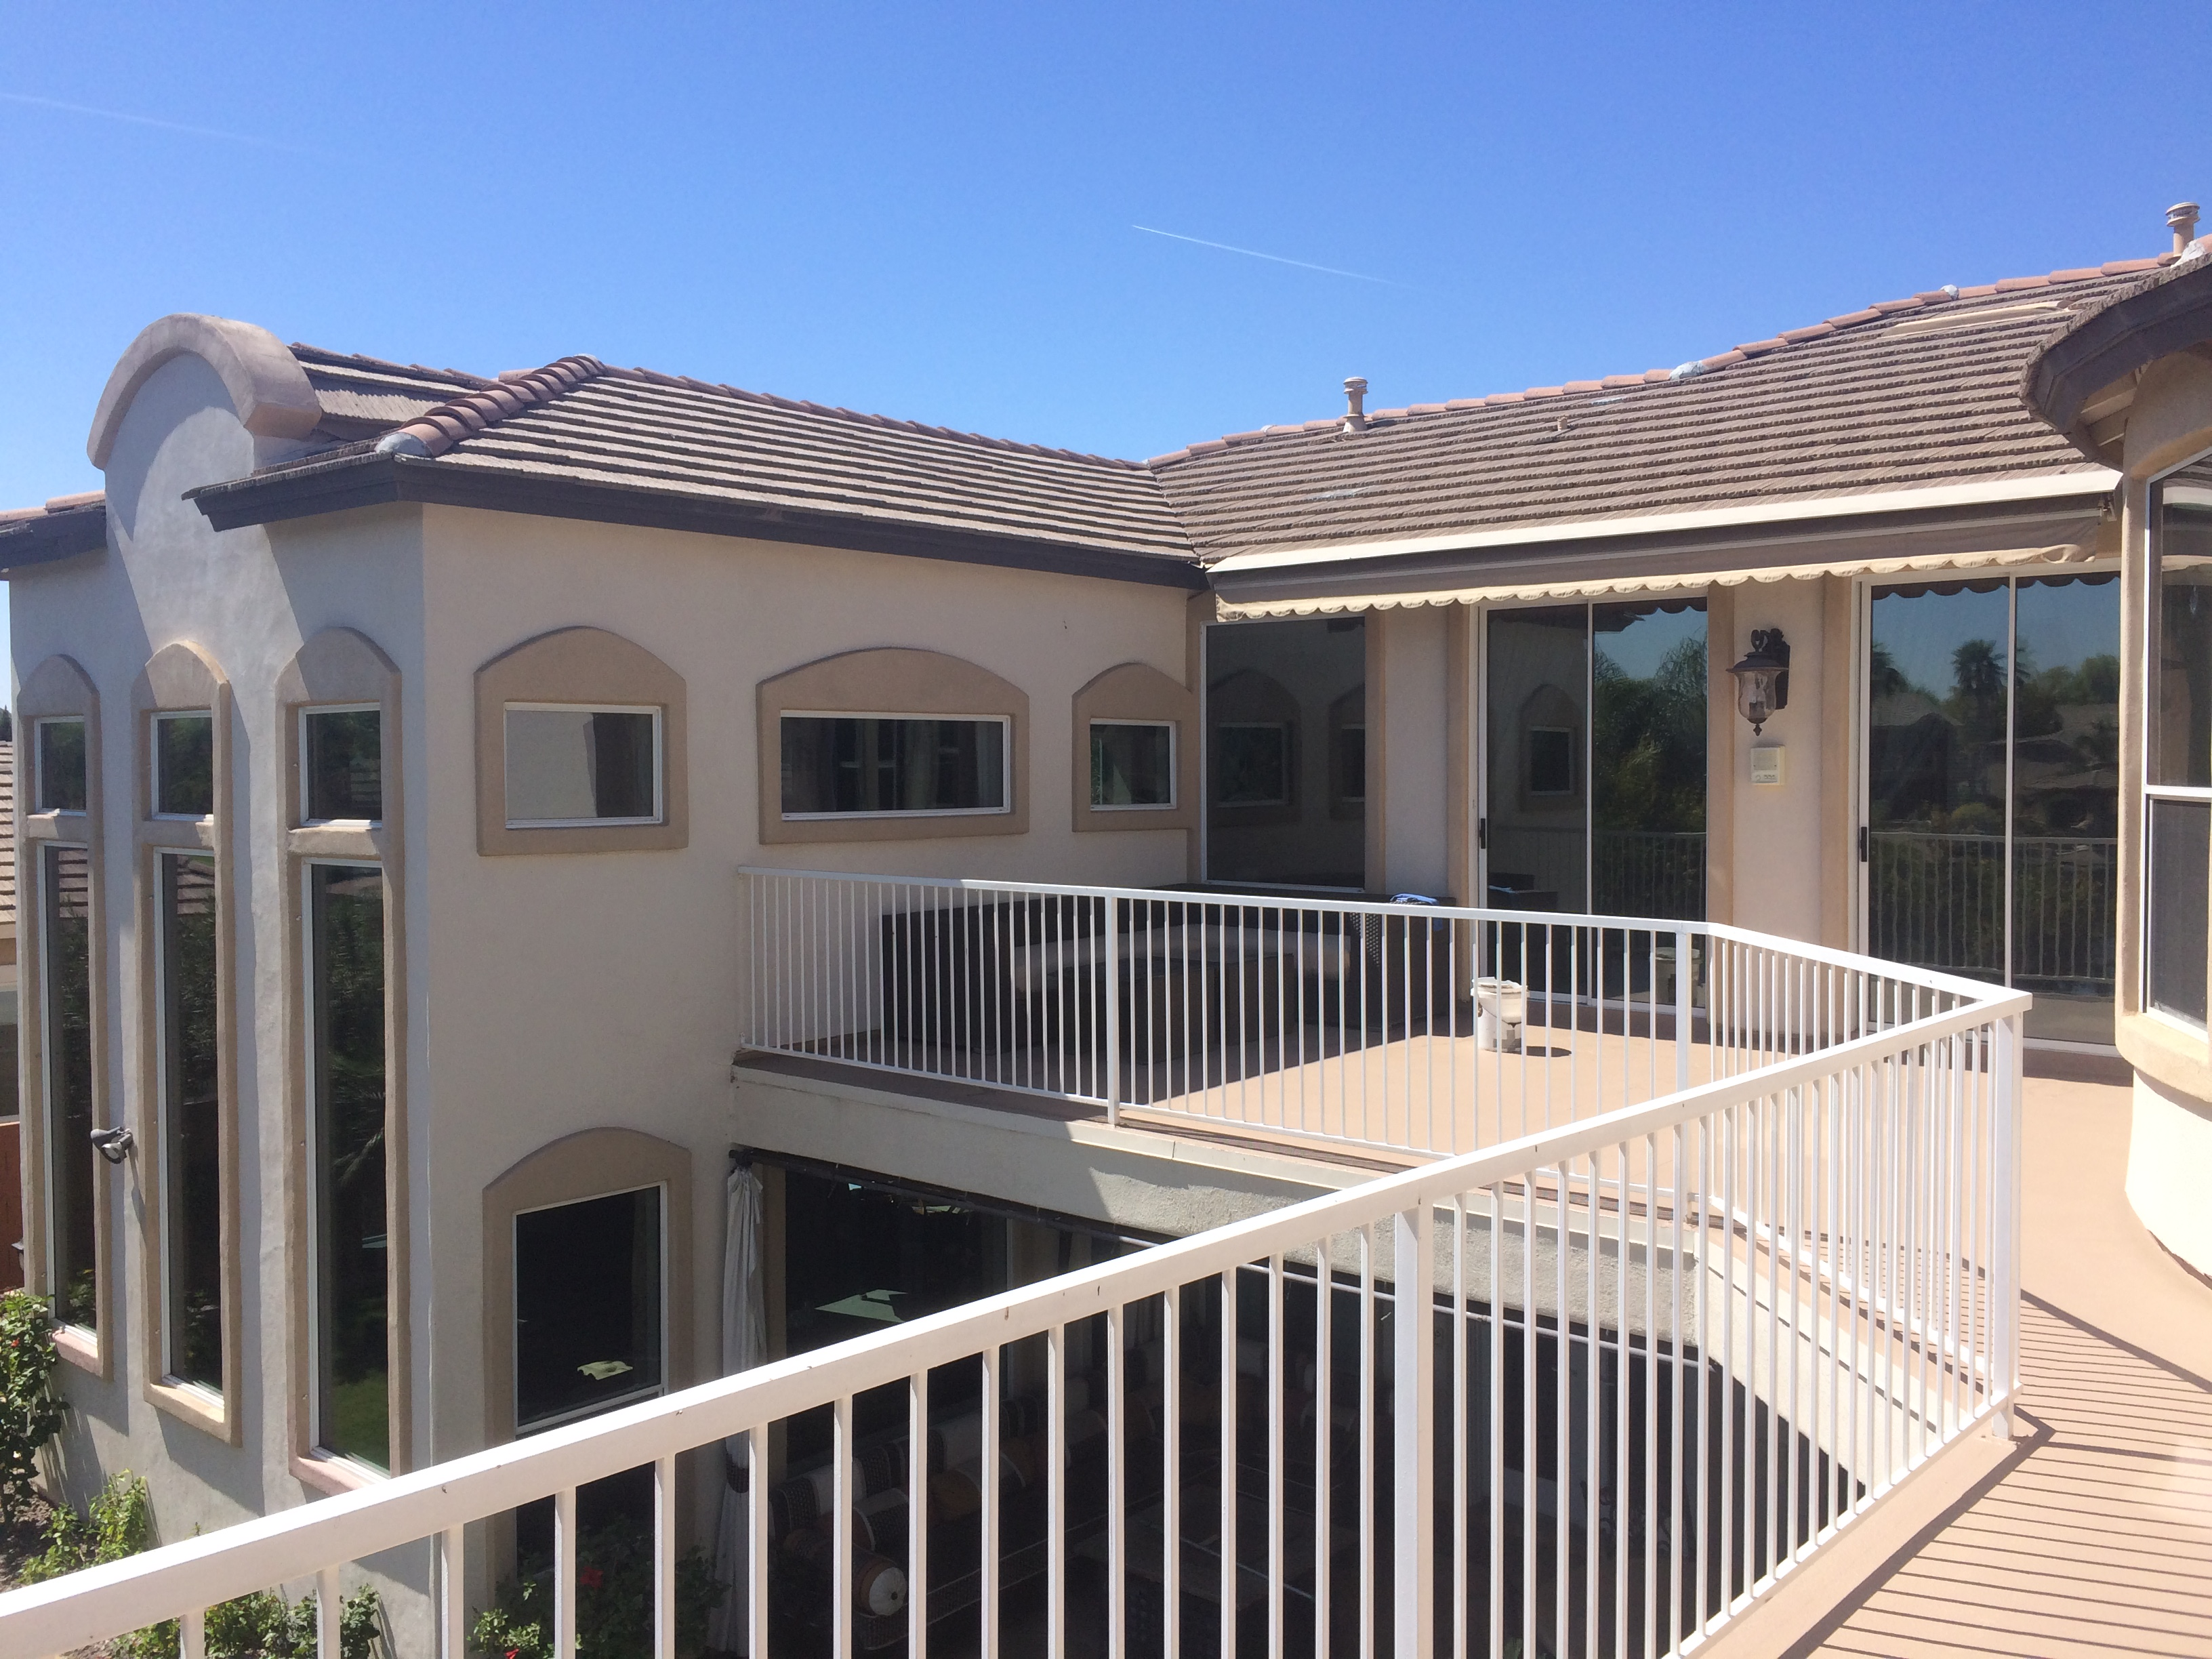 Window Cleaning Services in Arizona